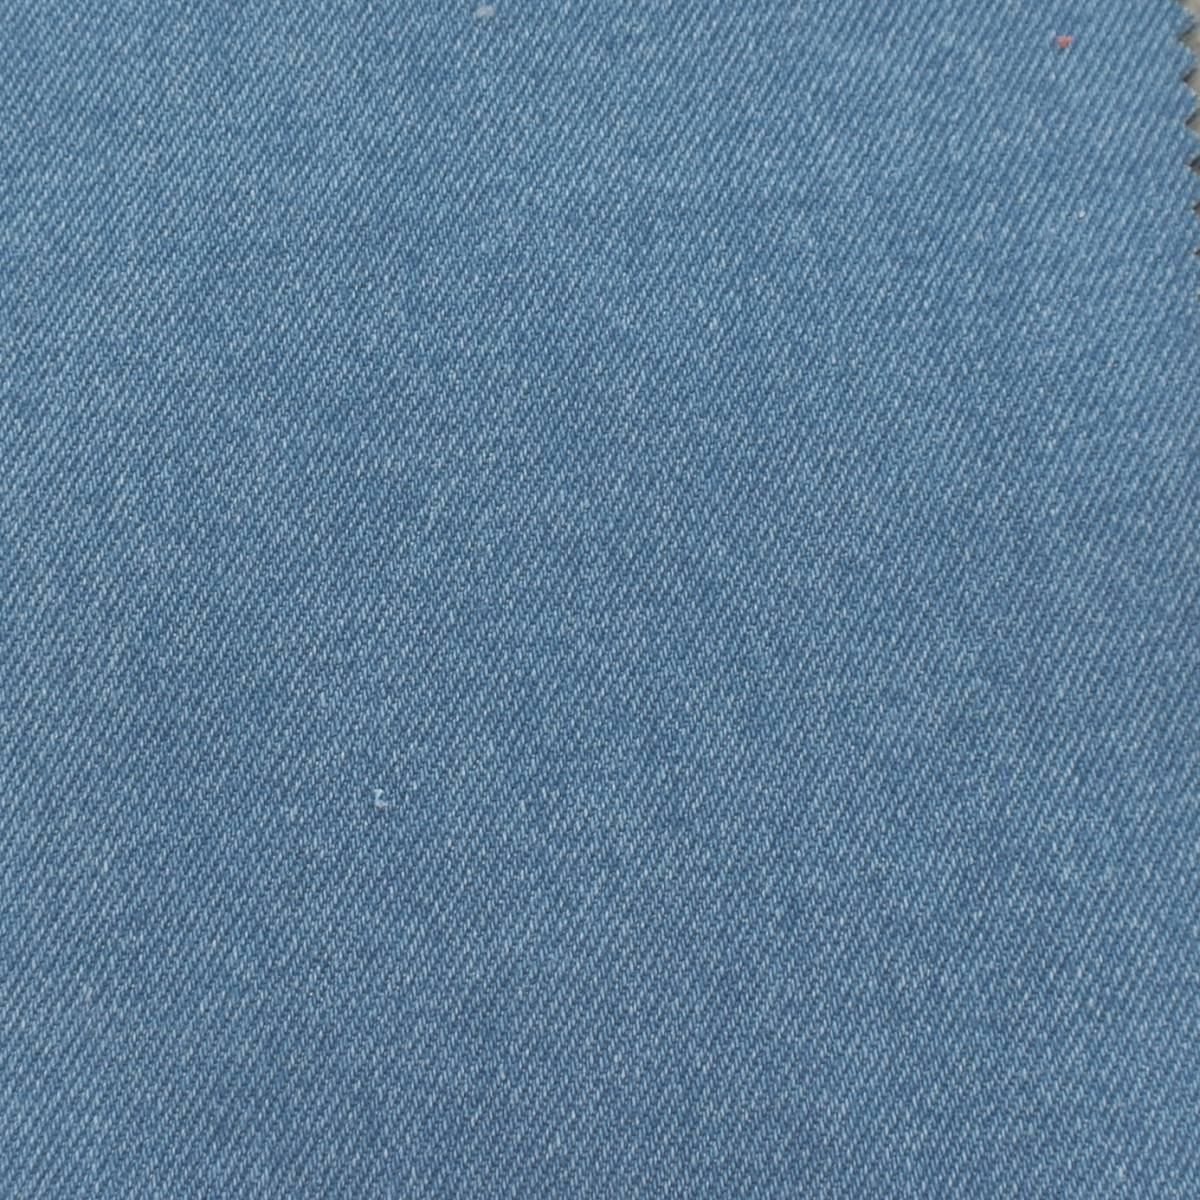 New Denim Fabric Blue J595f 01 Jane Churchill